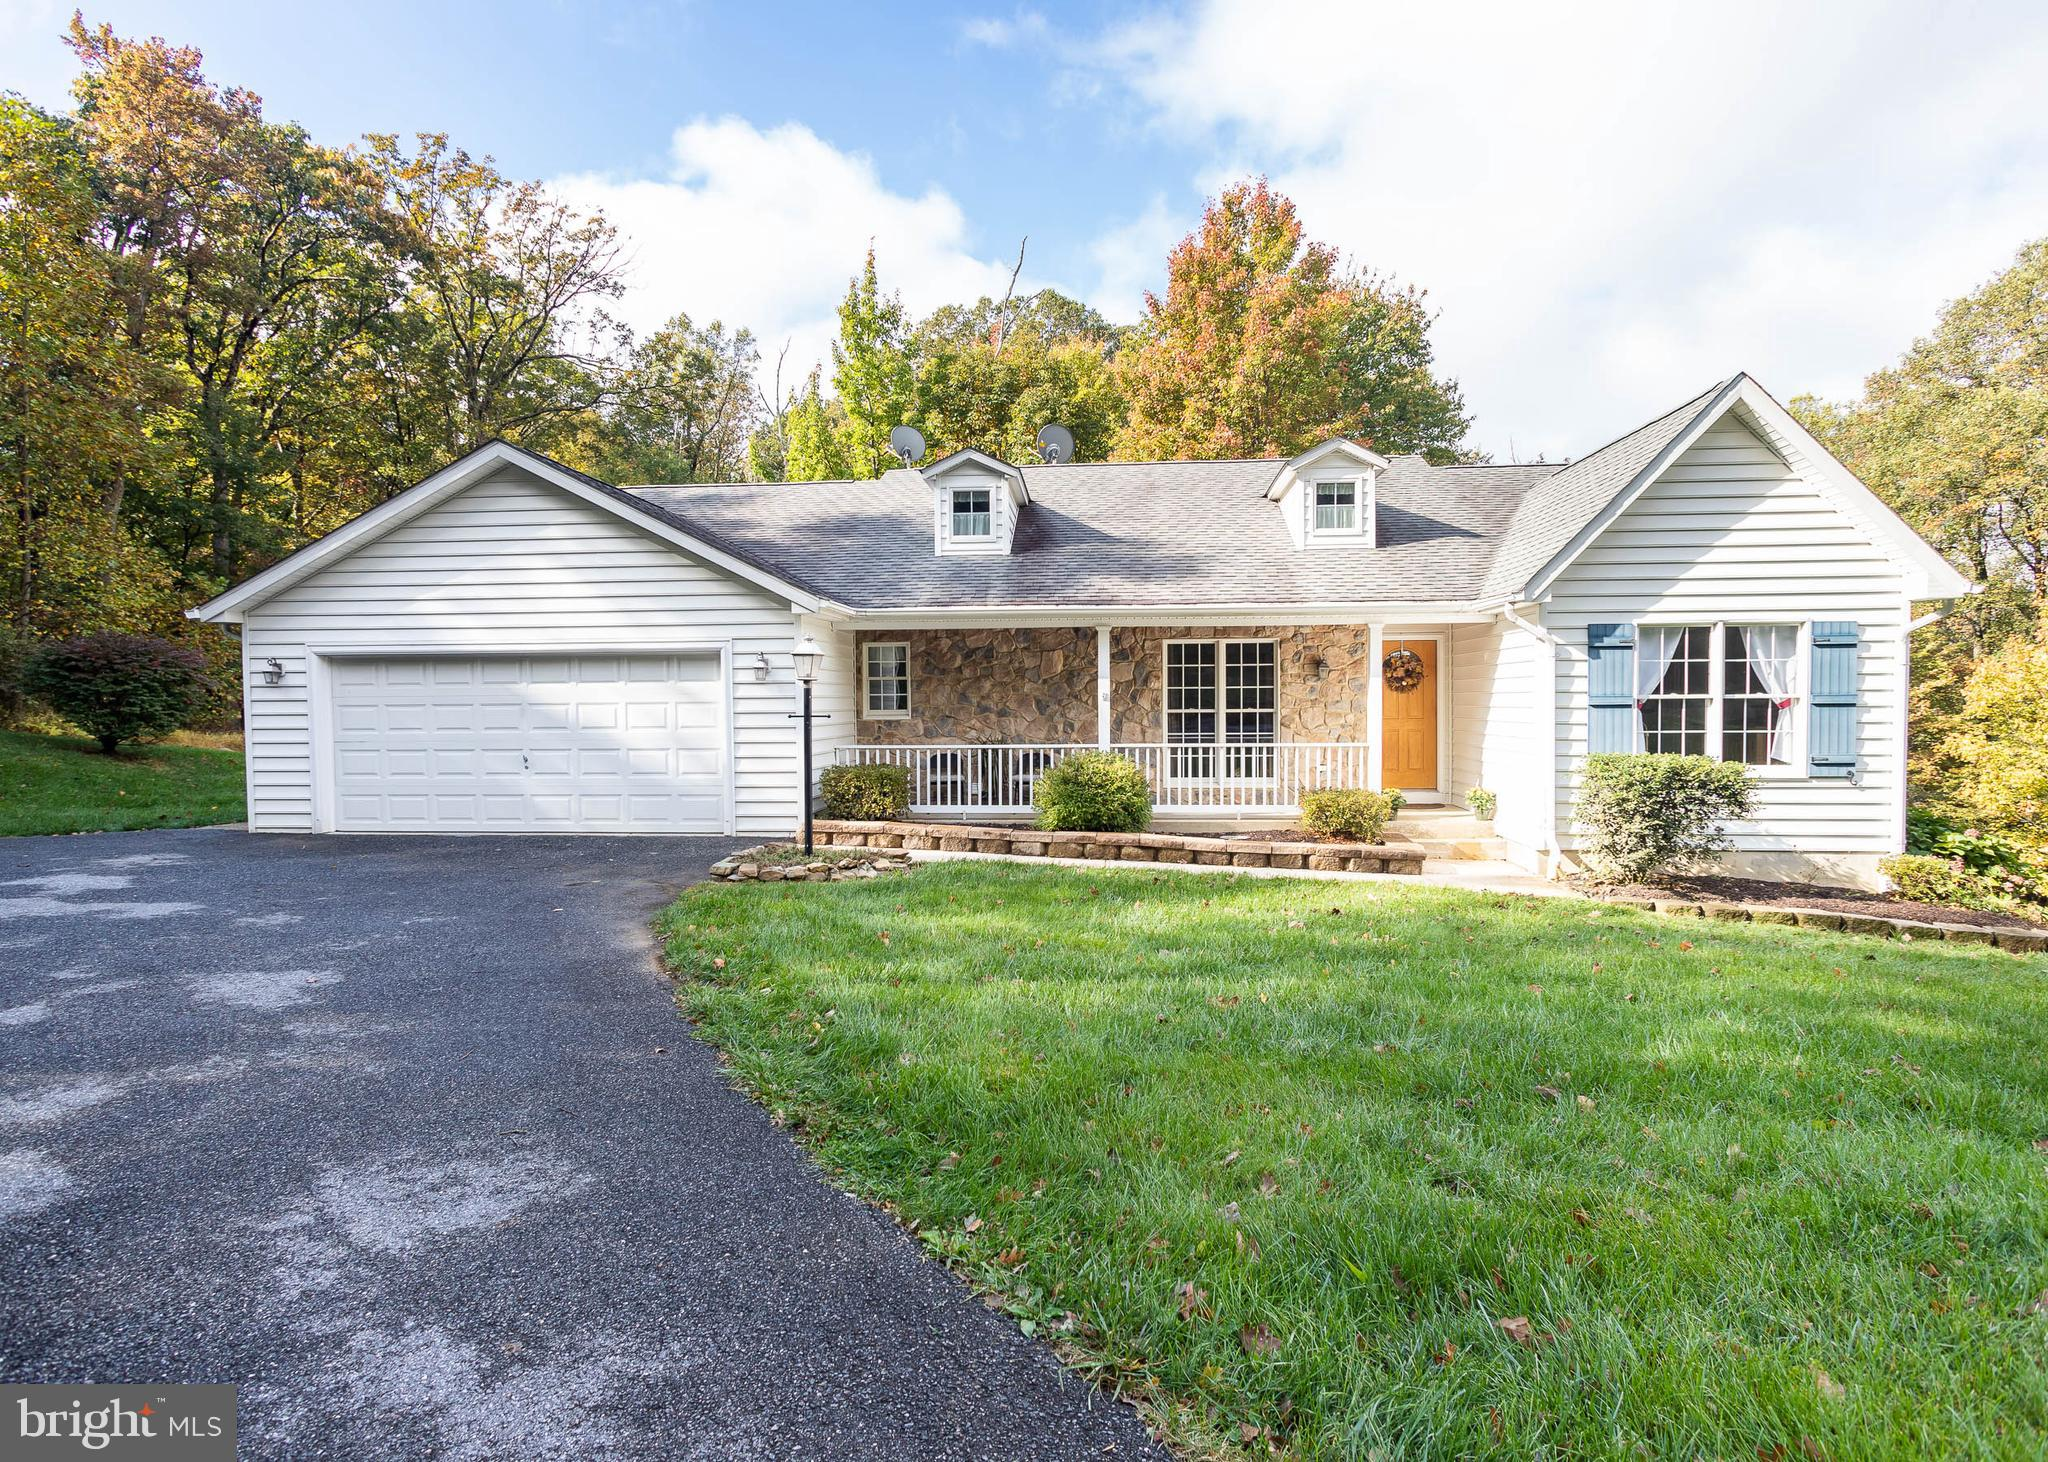 21889 NATIONAL PIKE, BOONSBORO, MD 21713